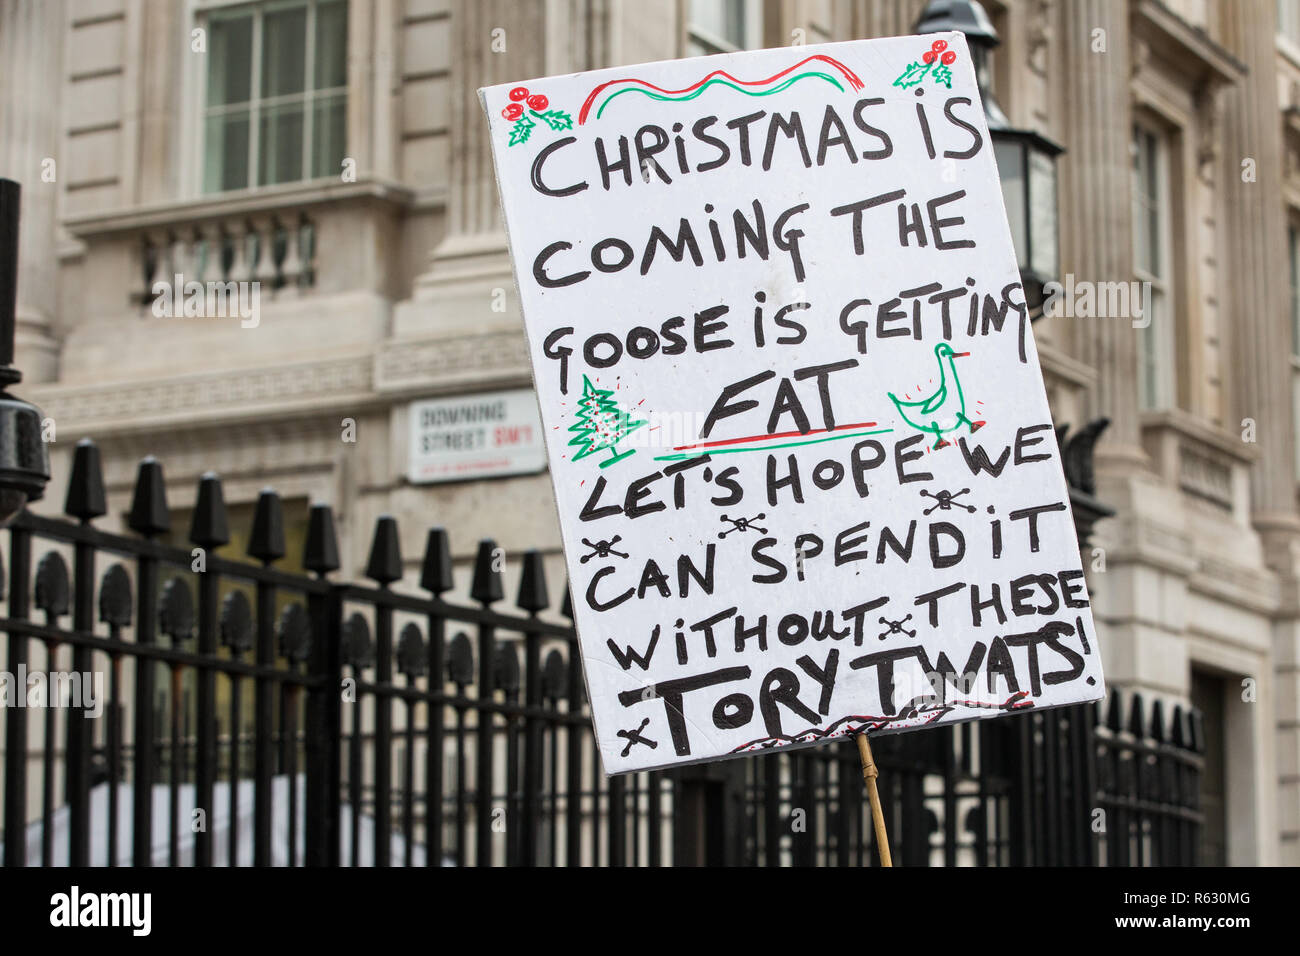 London, UK. 3rd December, 2018. A placard held by a pro-EU campaigner outside Downing Street. Credit: Mark Kerrison/Alamy Live News - Stock Image